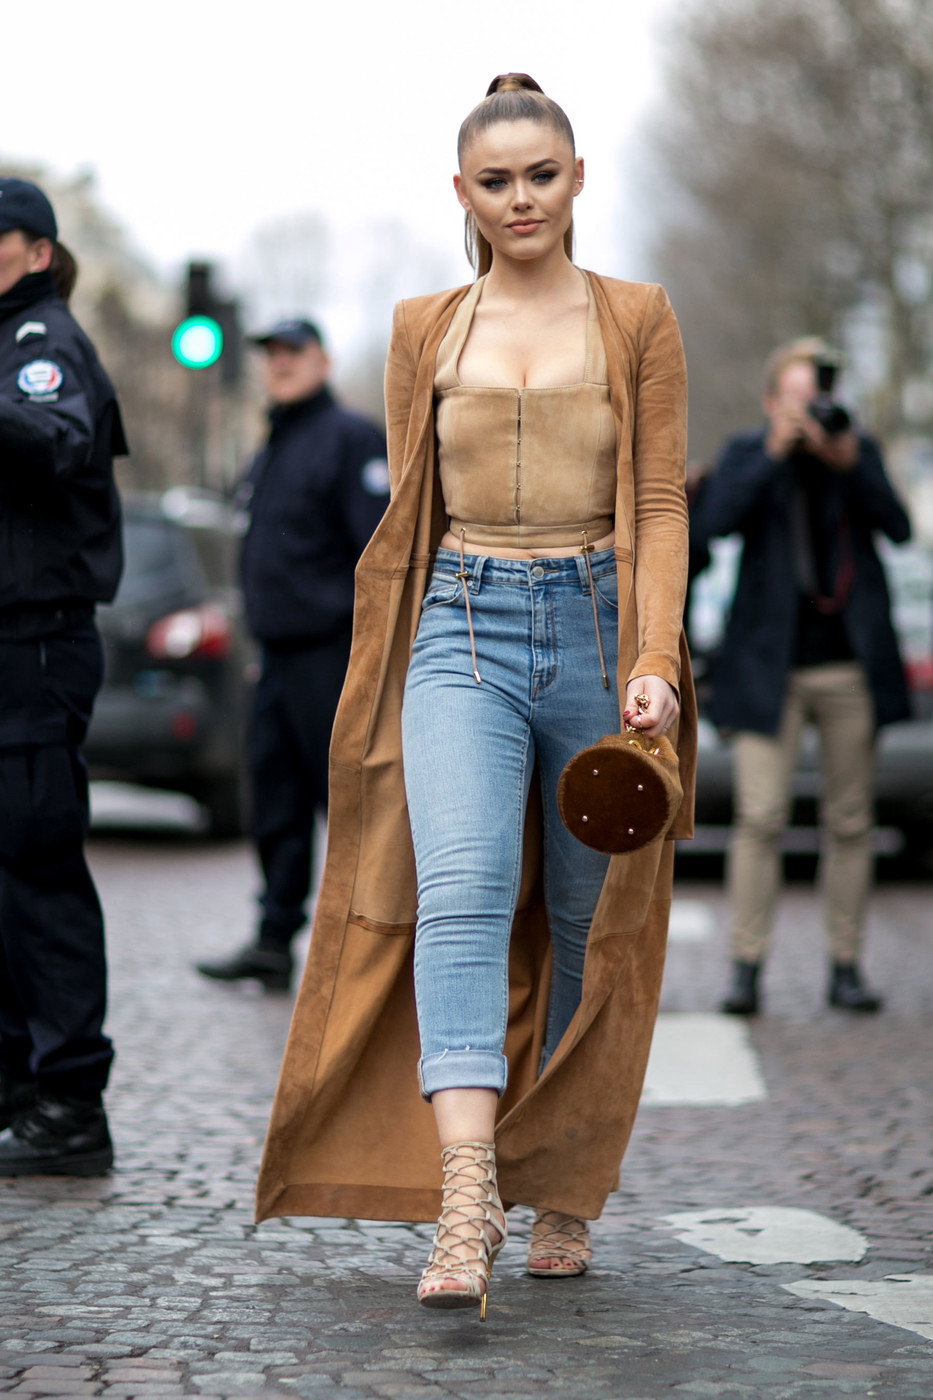 The Best Street Style Looks From Paris Fashion Week A W 2016 The Front Row View